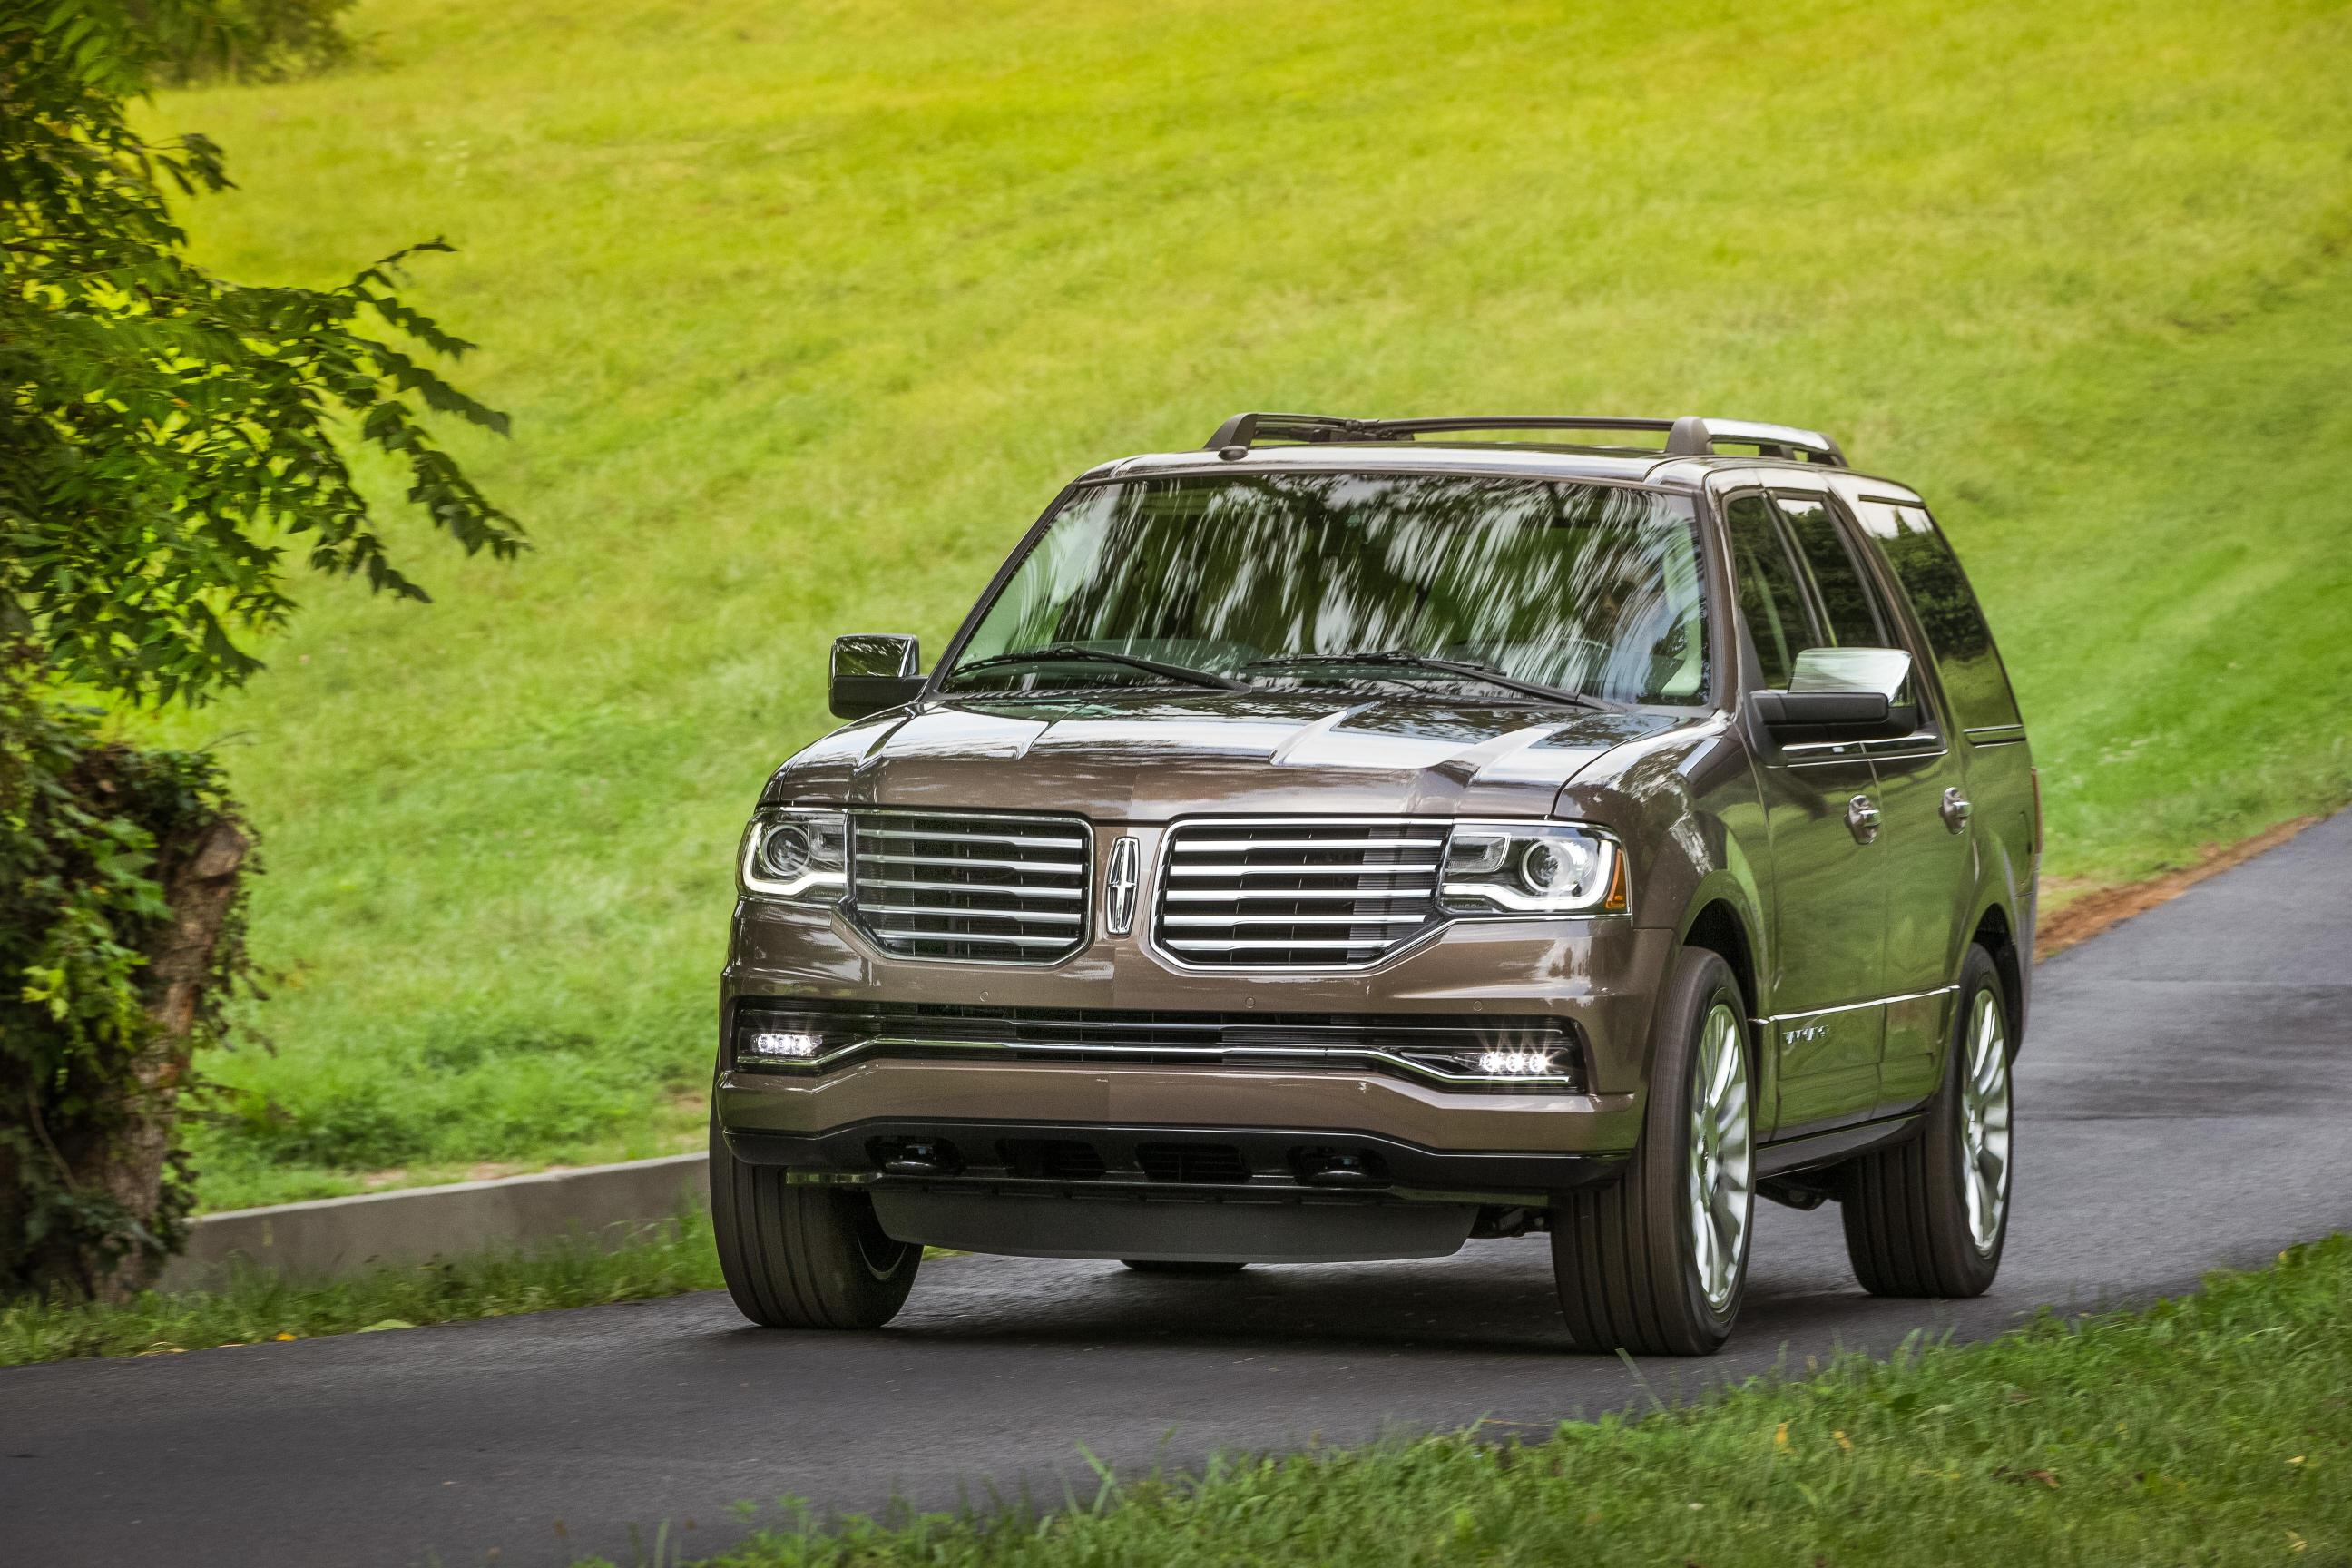 Best 3 Row Luxury Suv >> 2015 Lincoln Navigator Pricing Starts at $62,475 - autoevolution